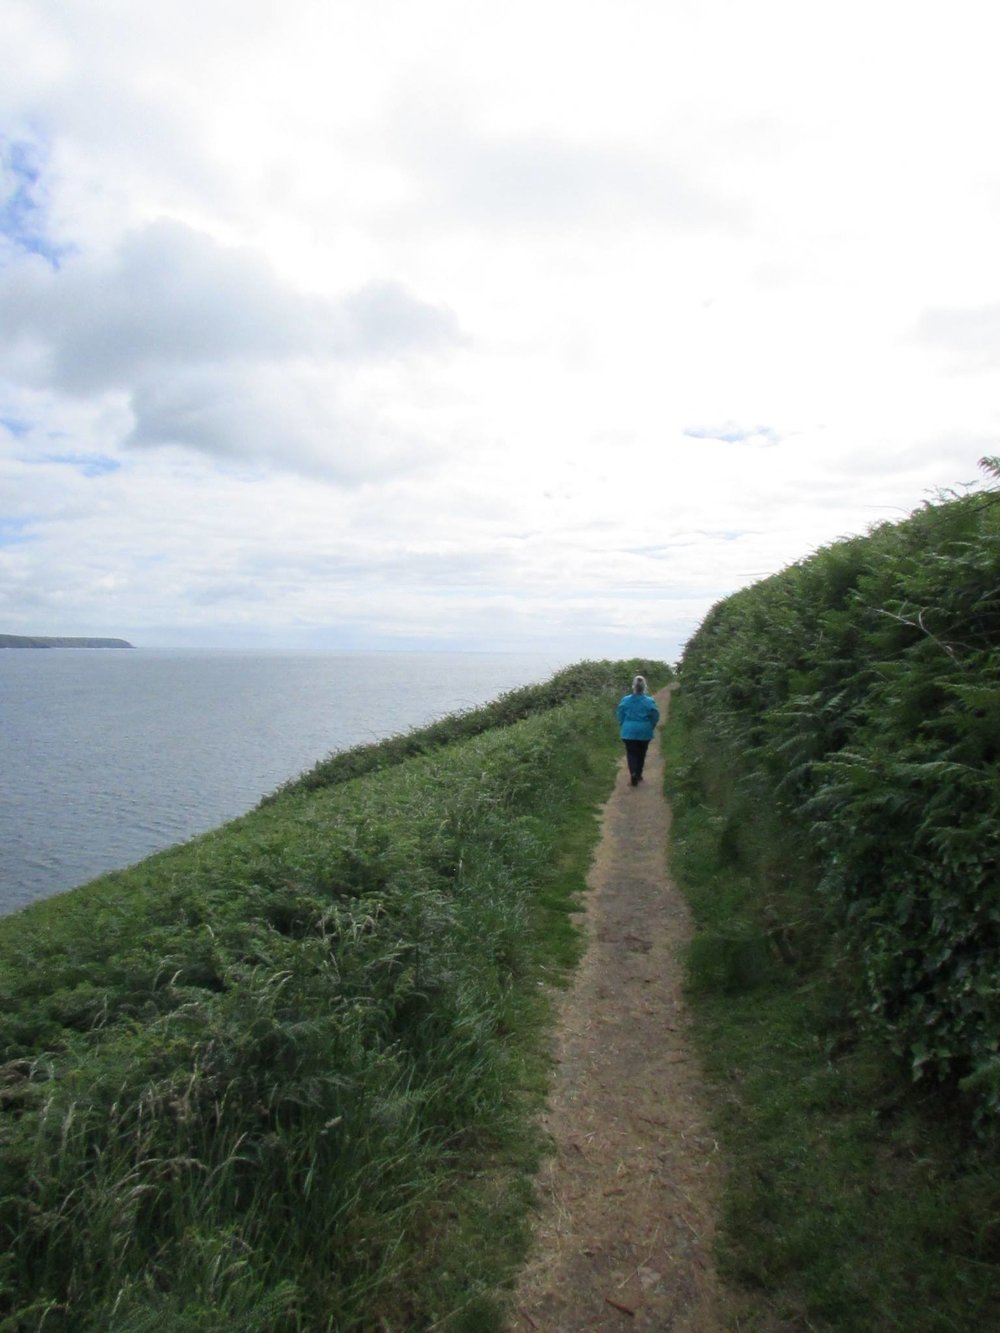 Summer 2016 - St. Declan's Way, Ardmore Peninsual, Co. Waterford, IRELAND